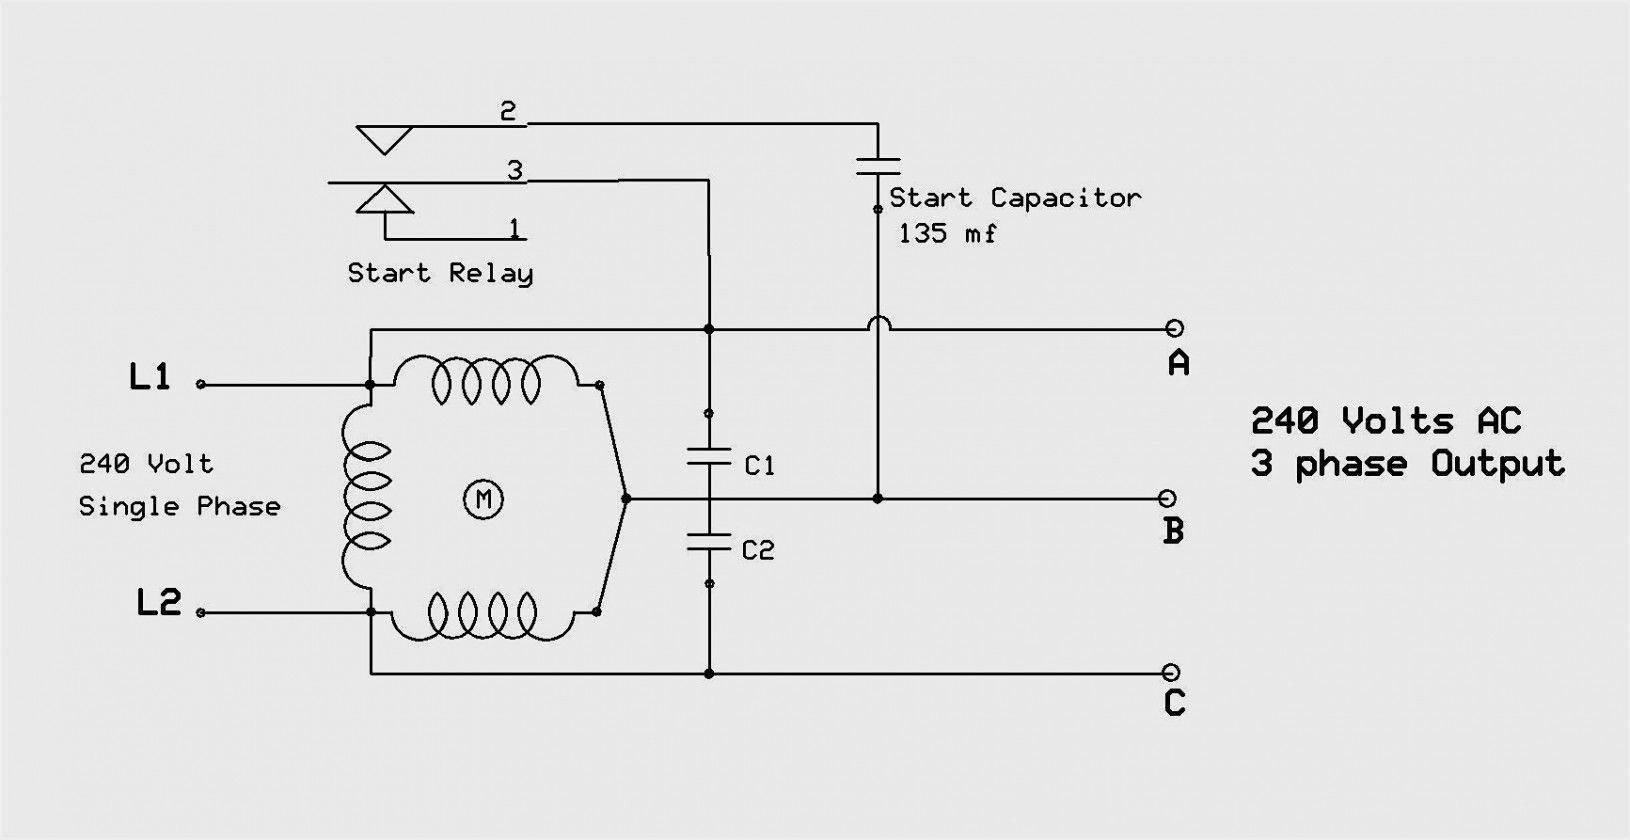 Wiring Diagram For 220 Volt Single Phase Motor Bookingritzcarlton Info Electrical Diagram Electrical Circuit Diagram Circuit Diagram